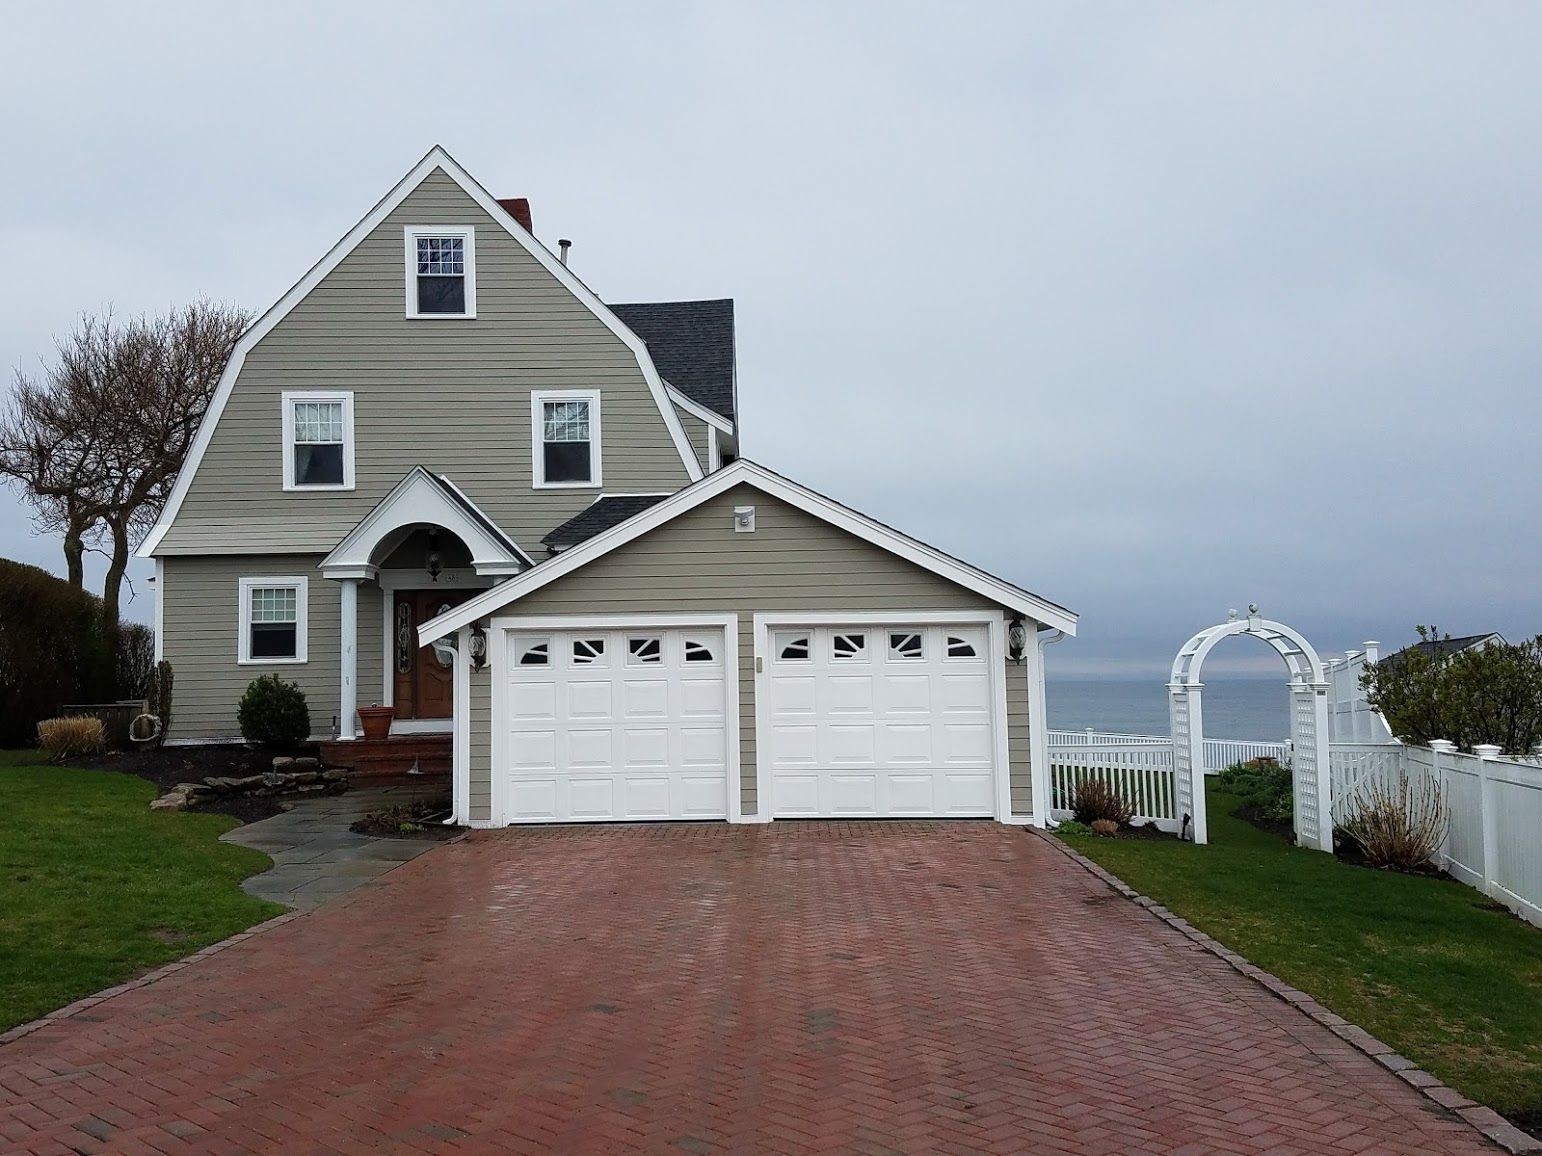 Best Siding In The World For Direct Ocean Front Fiber Cement Siding House Styles Cement Siding